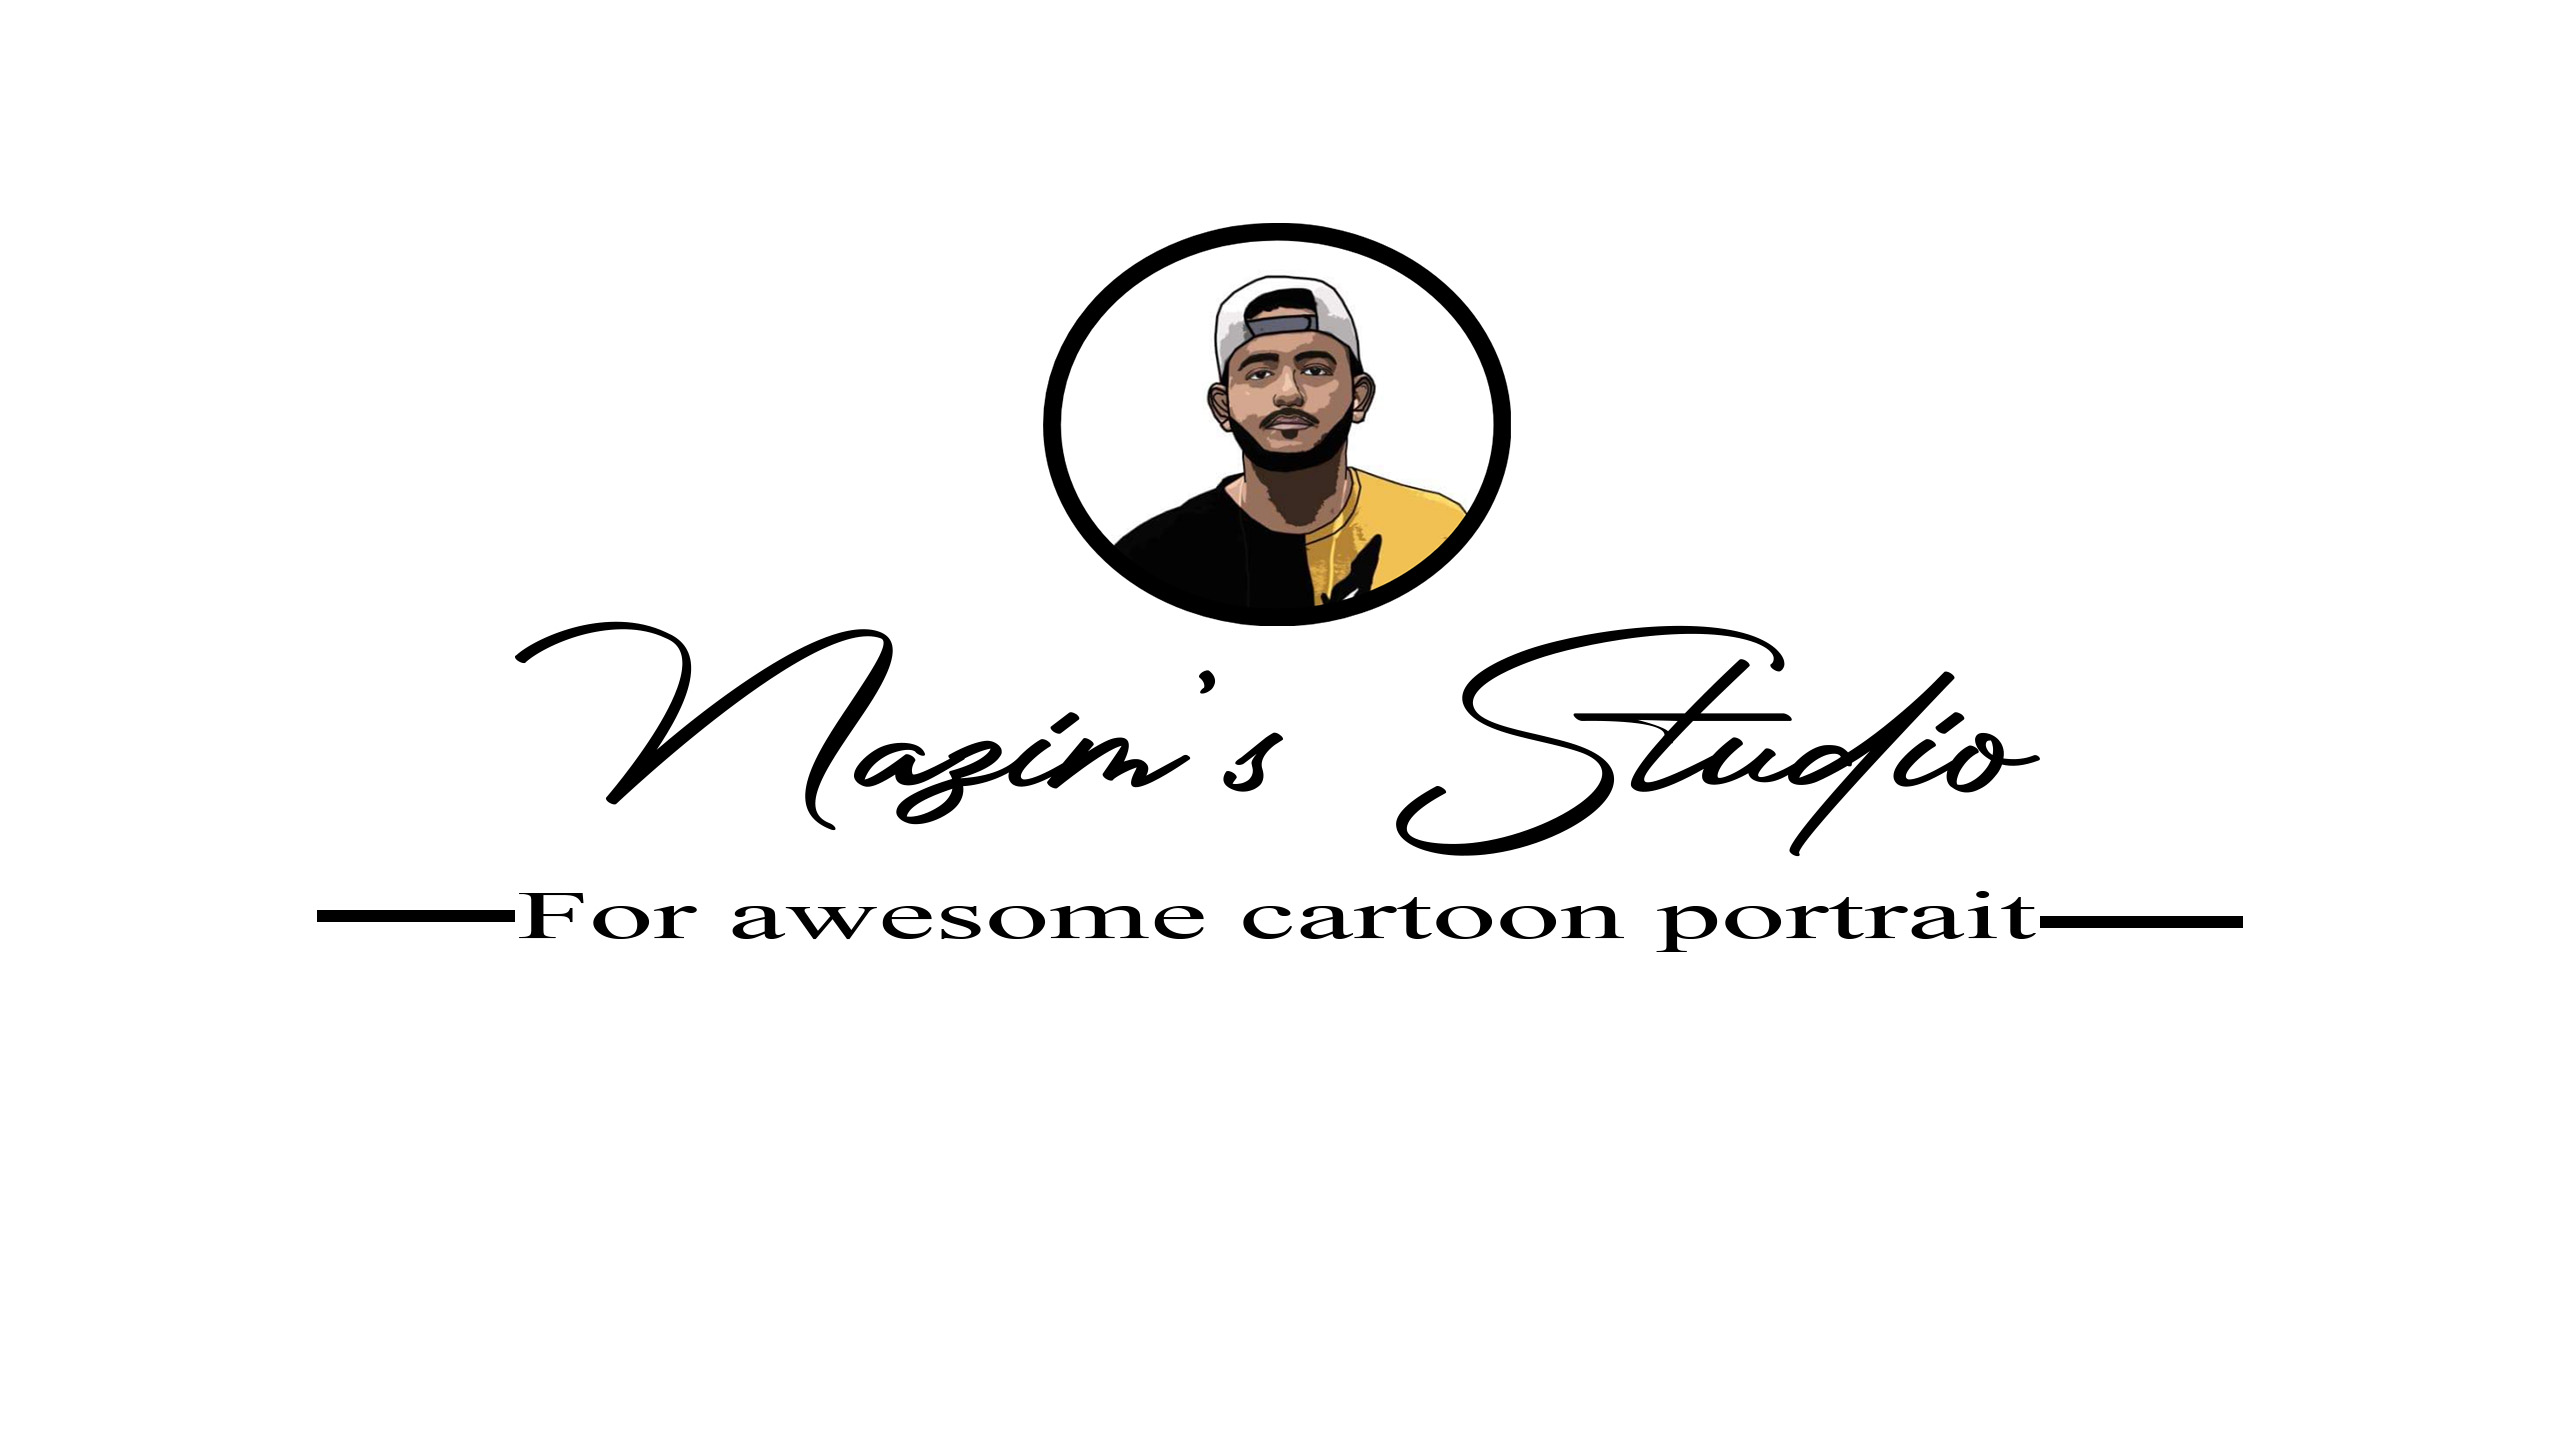 Create transparent logo with name and cartoon portrait